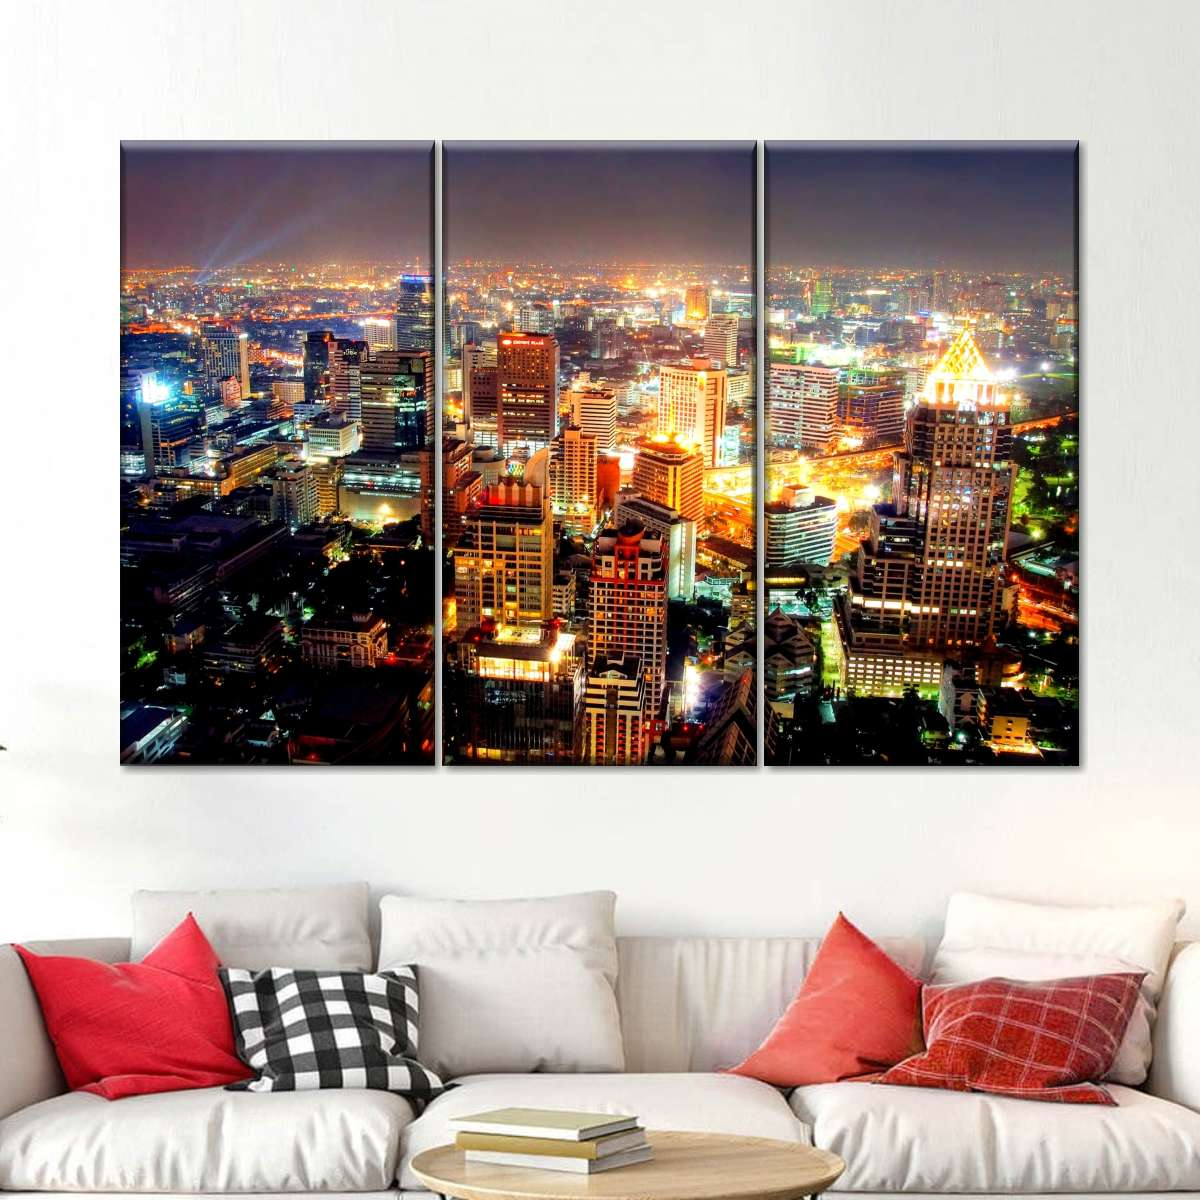 Bangkok At Night Multi Panel Canvas Wall Art Elephantstock